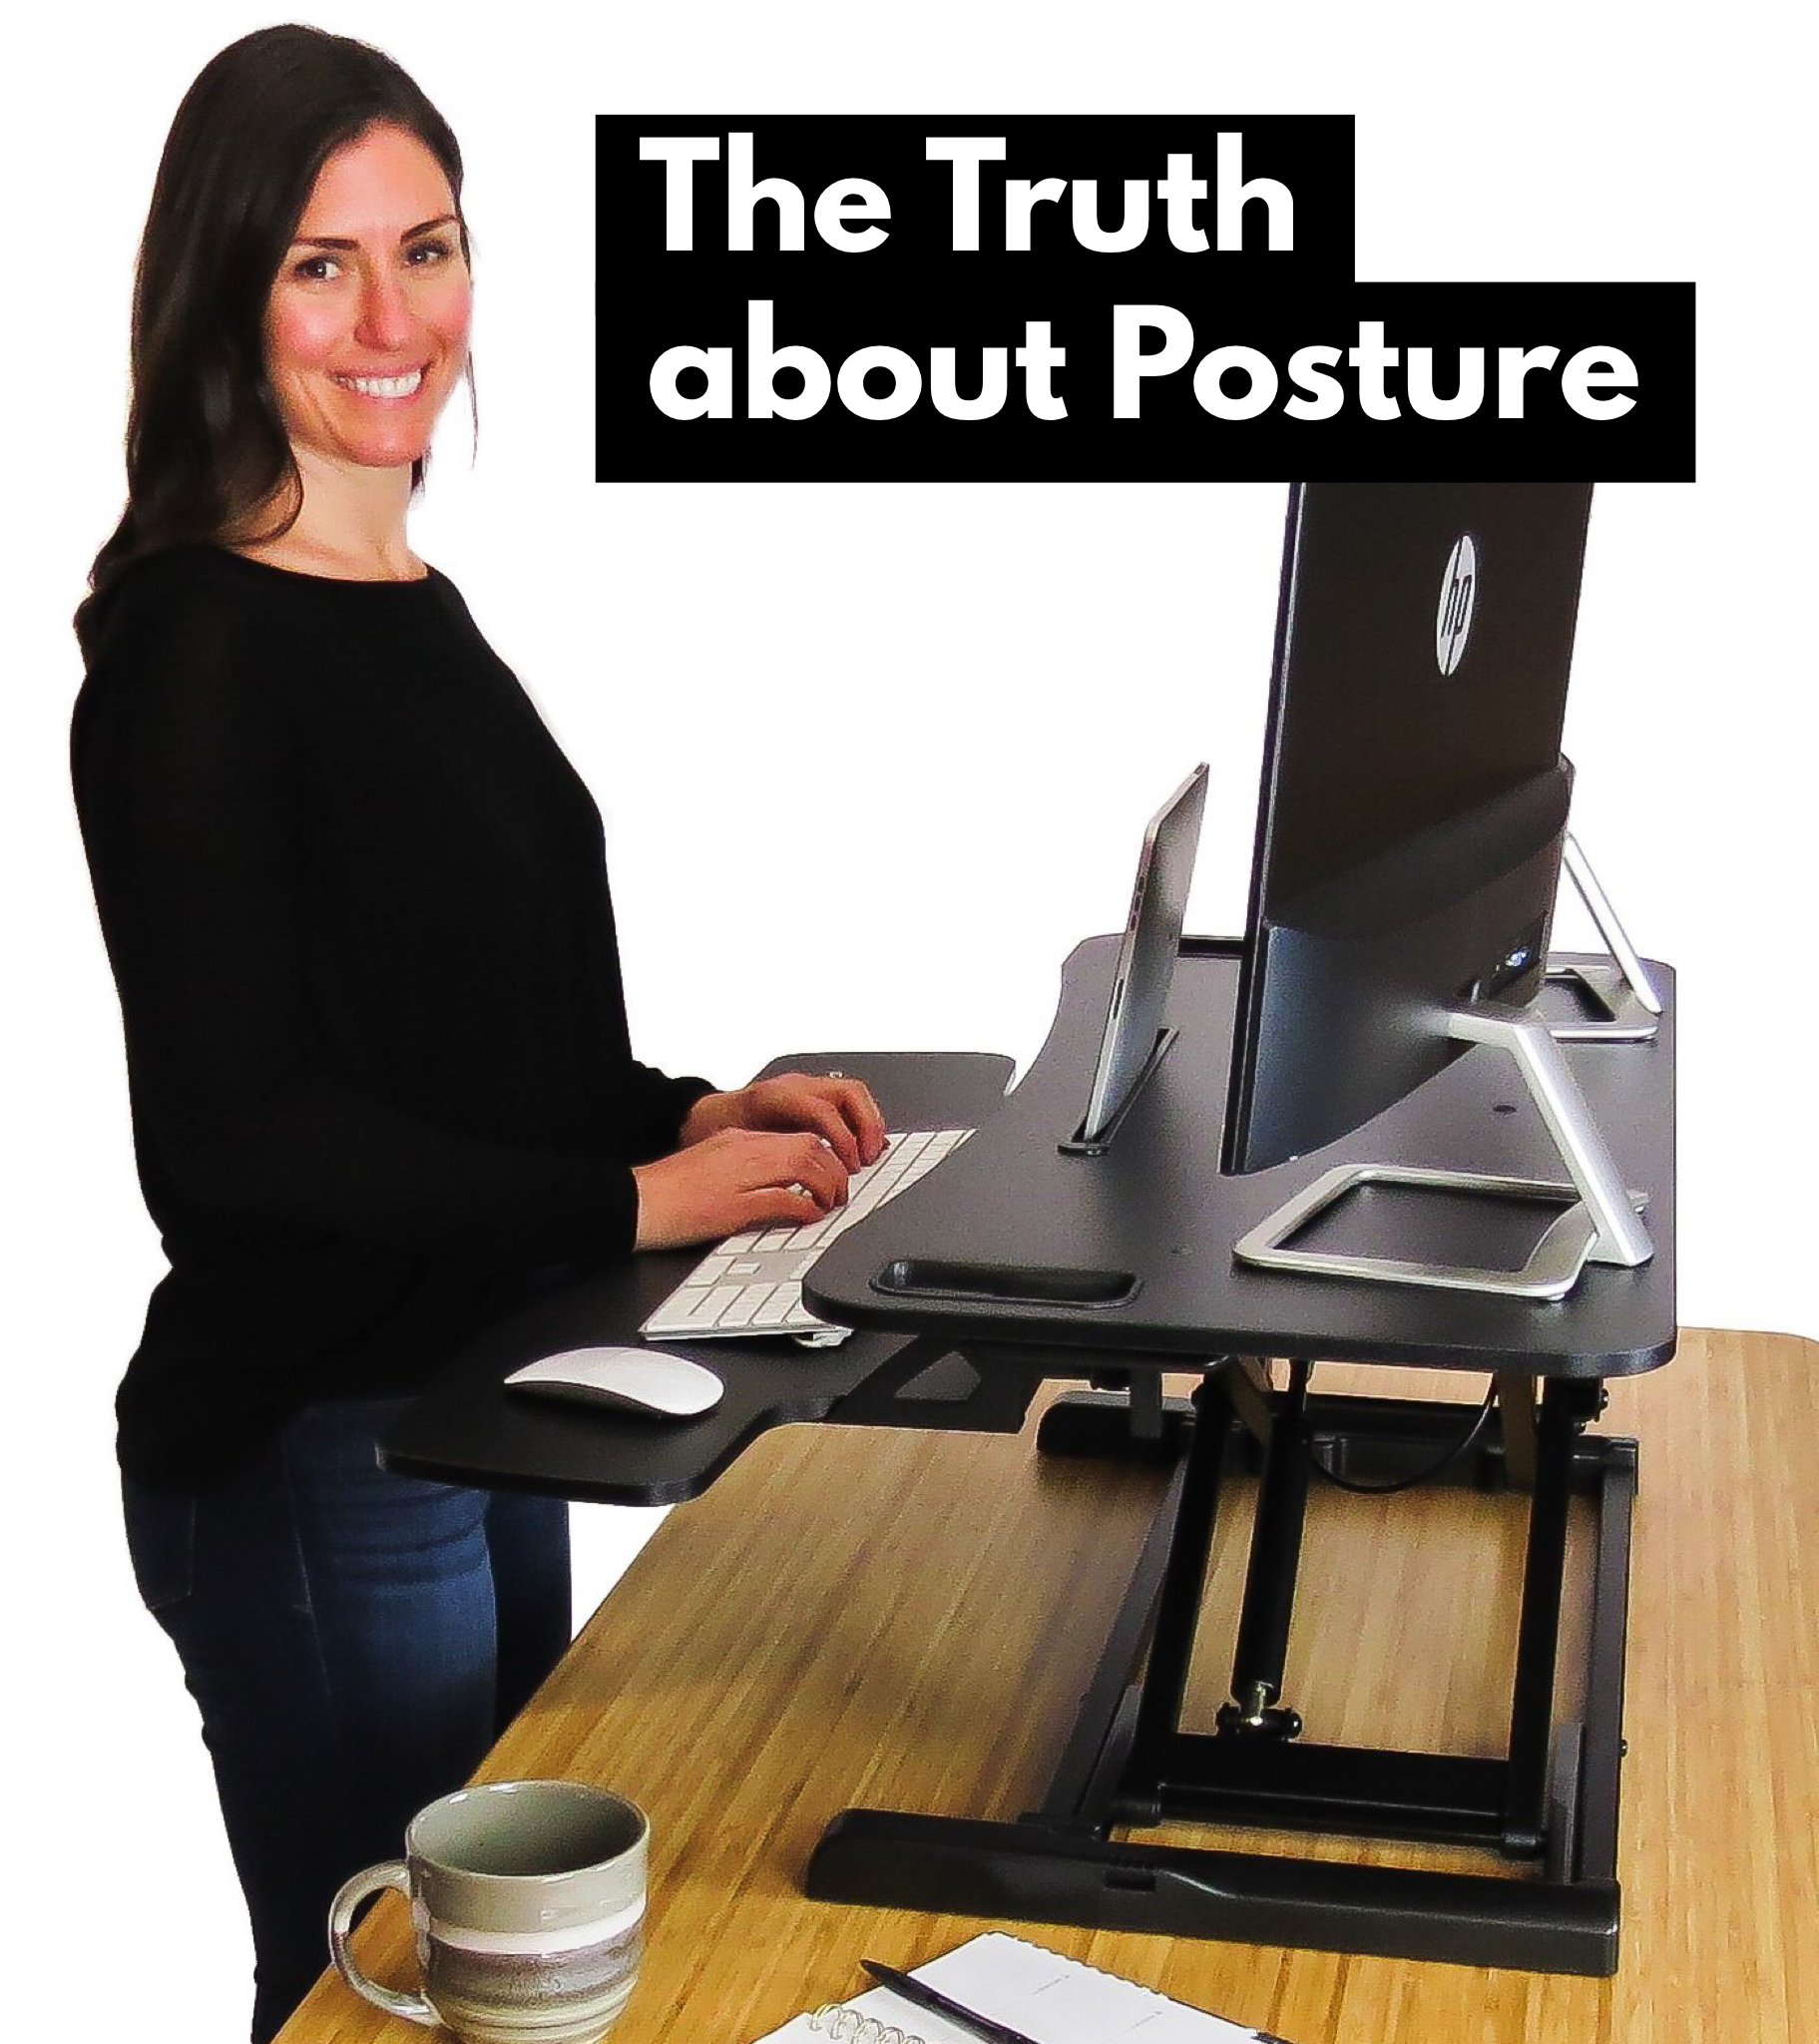 Using A Standing Desk At Work Gets You Out Of Your Chair And Out Of The Posture Slump Stand Up Tall While Working At Your Desk W Desk Standing Desk Desk